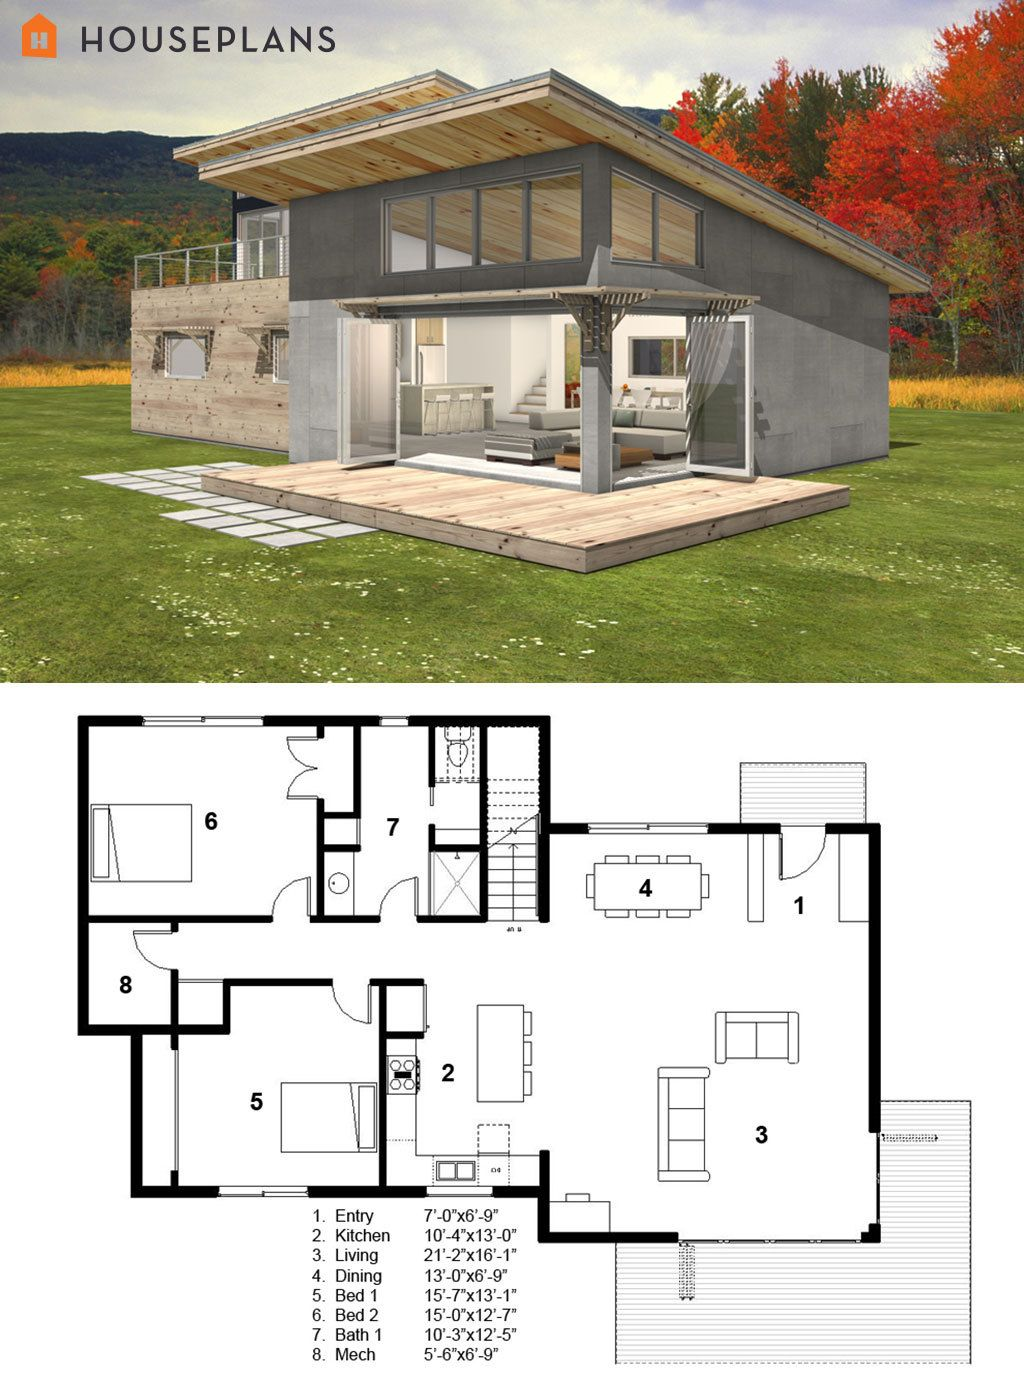 Small Modern cabin house plan by FreeGreen | Energy Efficient House on small cabin lots of windows, cabin house floor plan, small cabin fireplace, small cabin office, small cabin great room, small homes with open floor plans, small cabin laundry room, small cabin kitchen, small open concept floor plans, small cabin dining room, small cabin breakfast nook, small cabin storage, small hunting cabin plans, small cabin dining area, small cabin window treatments, small lake cabin floor plans, small cabin front porch, small green home plans prefabs, small cabin screened porch, small cabin floor plans under 1000 sq ft,